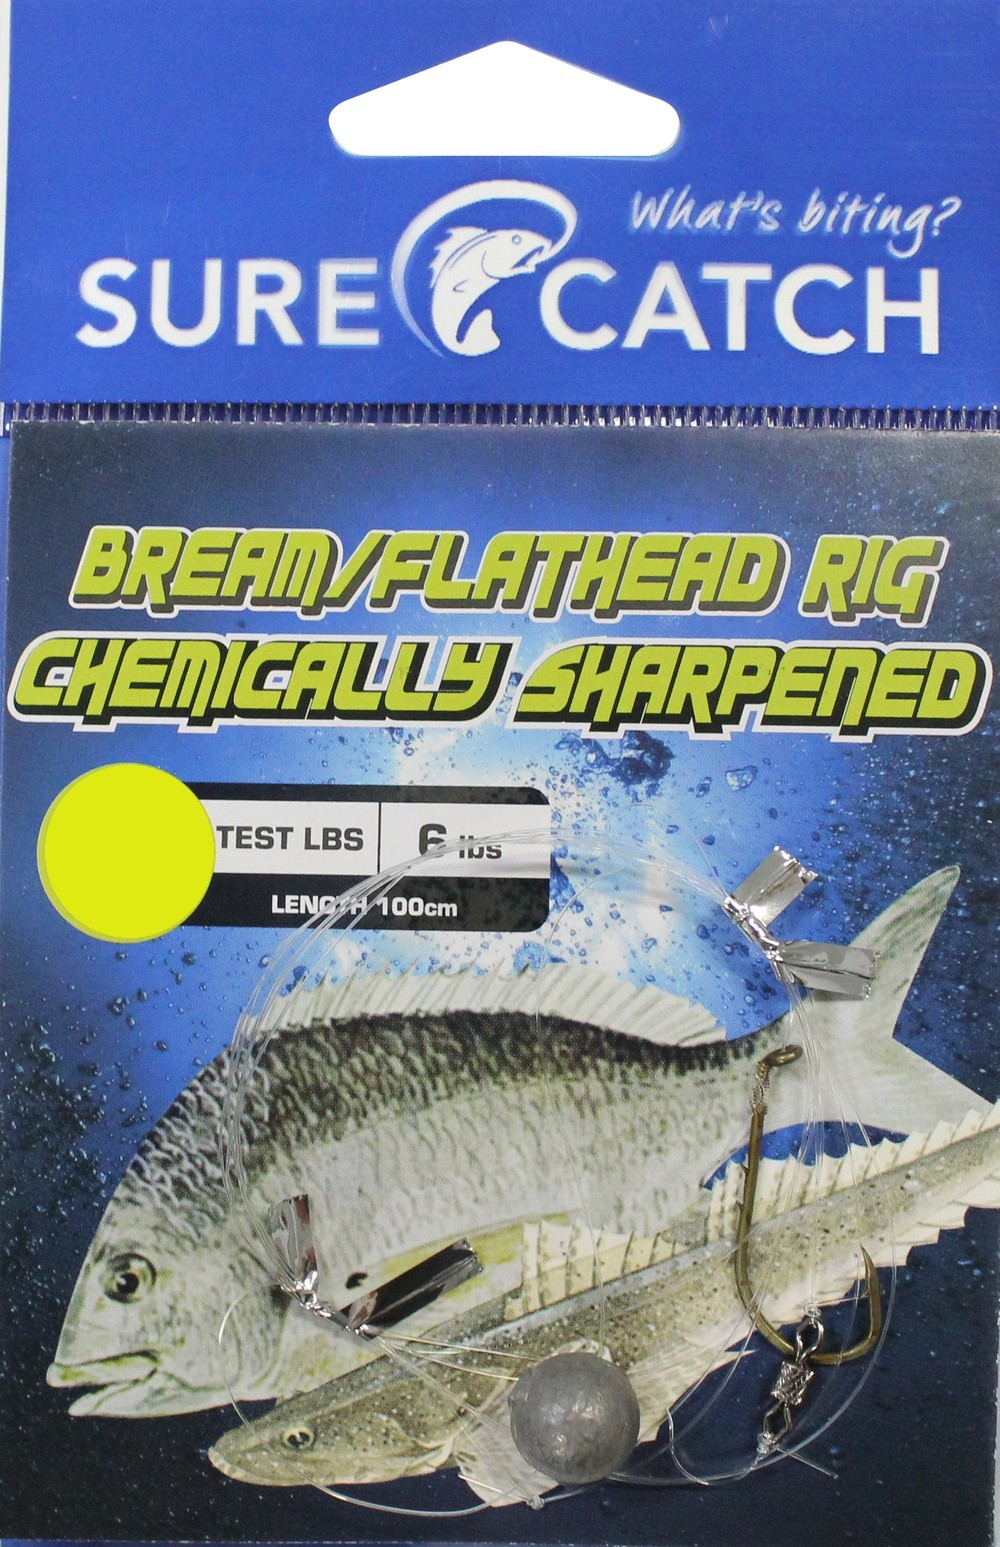 Sure Catch Bream & Flathead Rig Chem/Sharp - Size 4